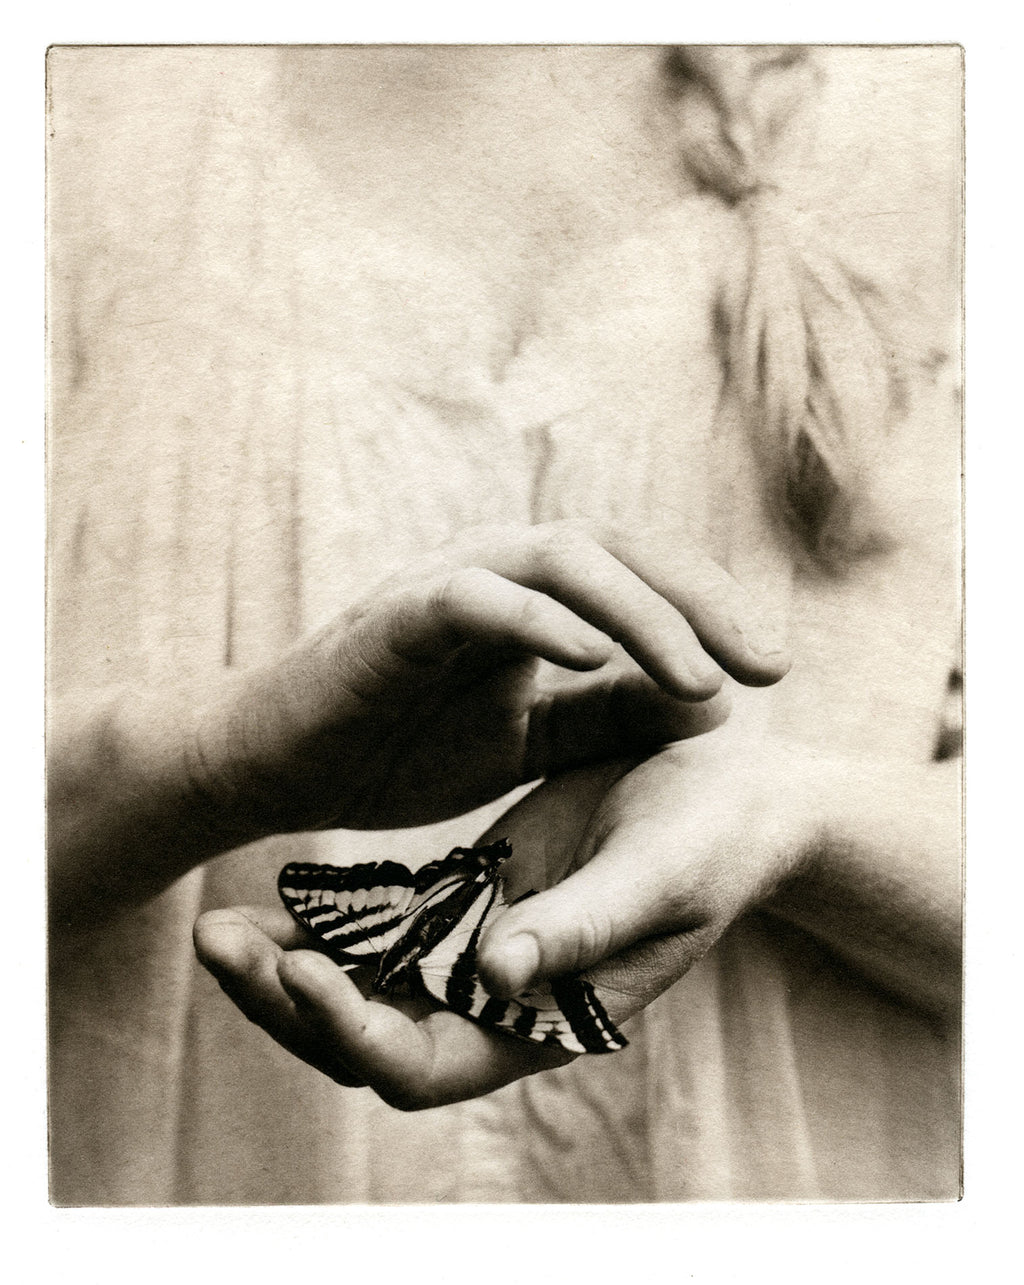 Covet   - Polymer photogravure print - Edition 2021